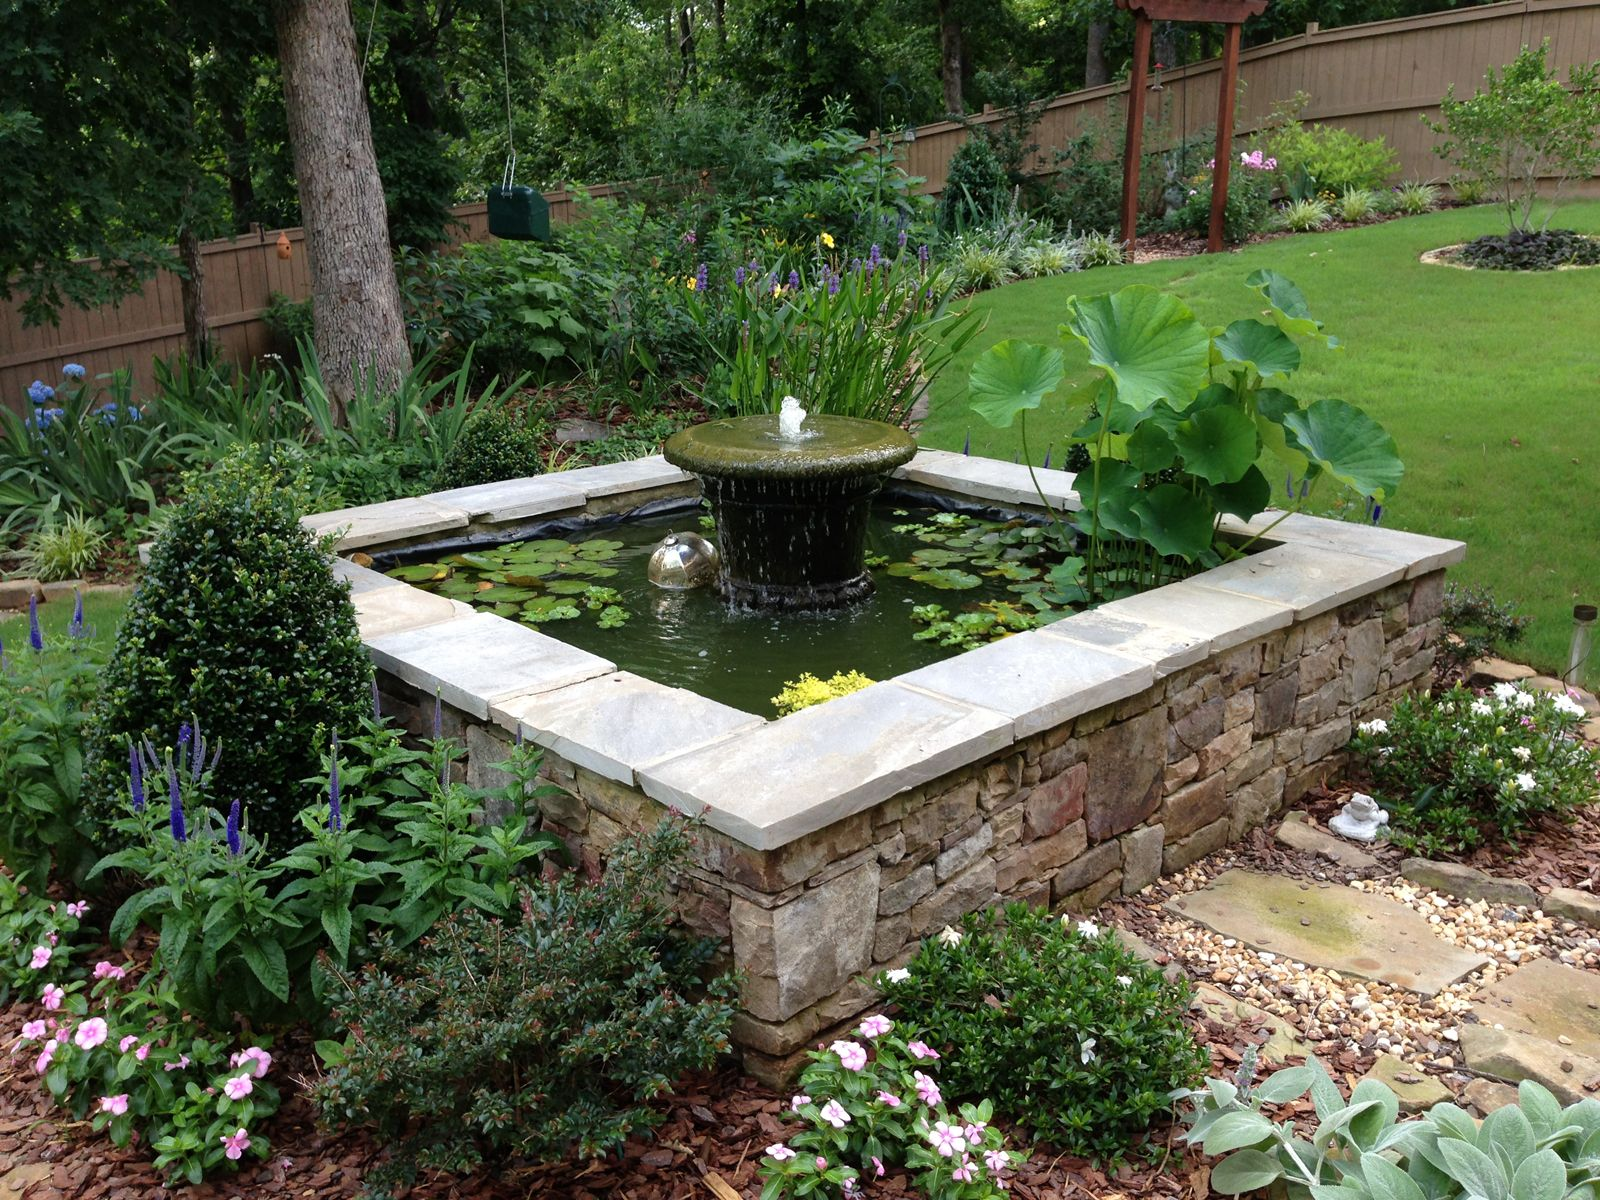 Square water pool carol bill 39 s garden in georgia for Above ground koi pond design ideas